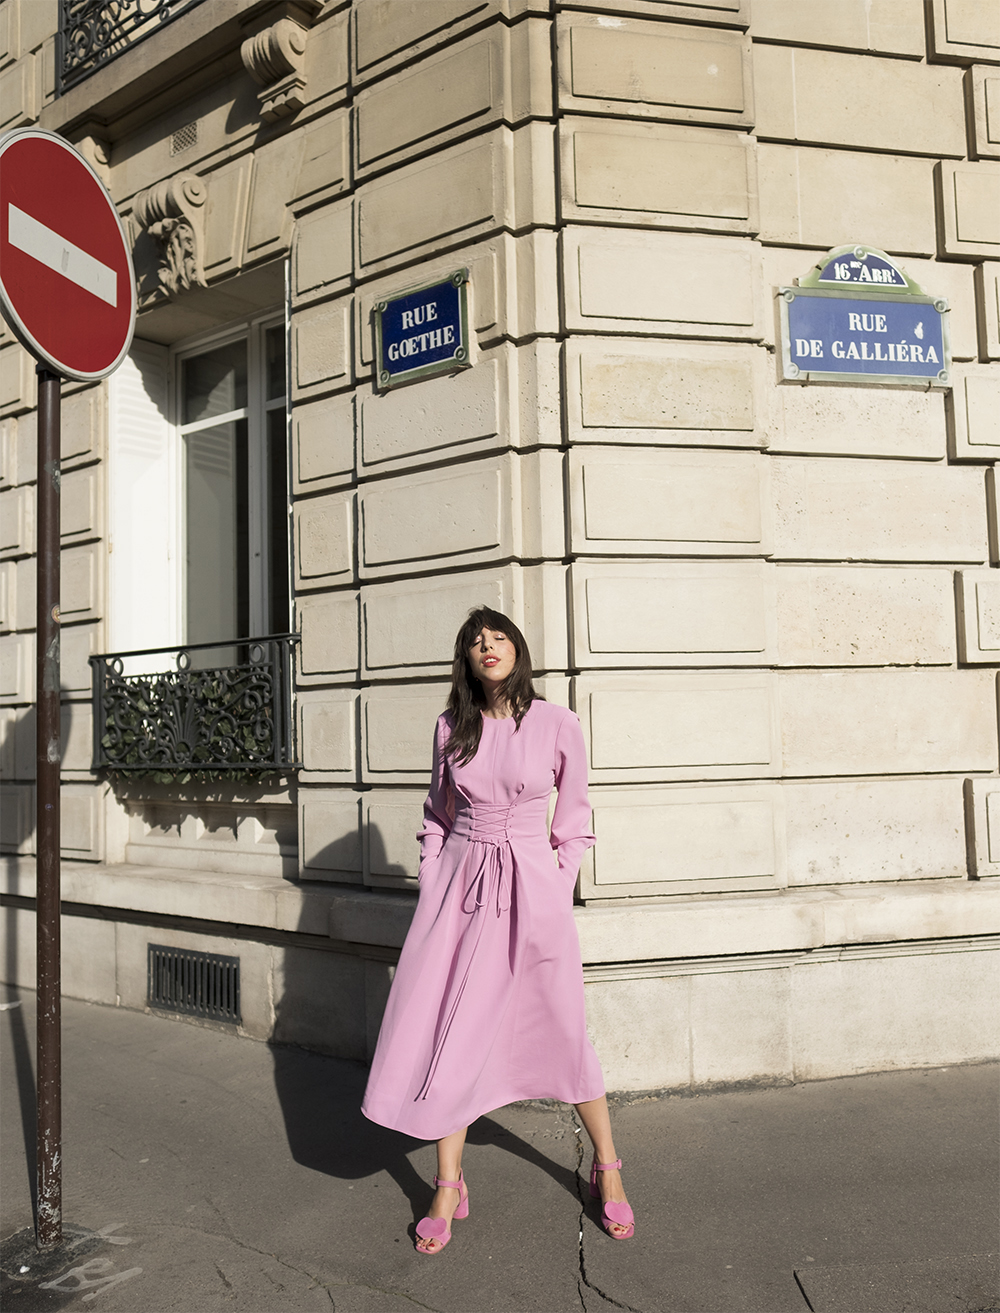 sania claus demina tibi pink dress ss18 stine goya heart shoes sandals suede paris april spring_1